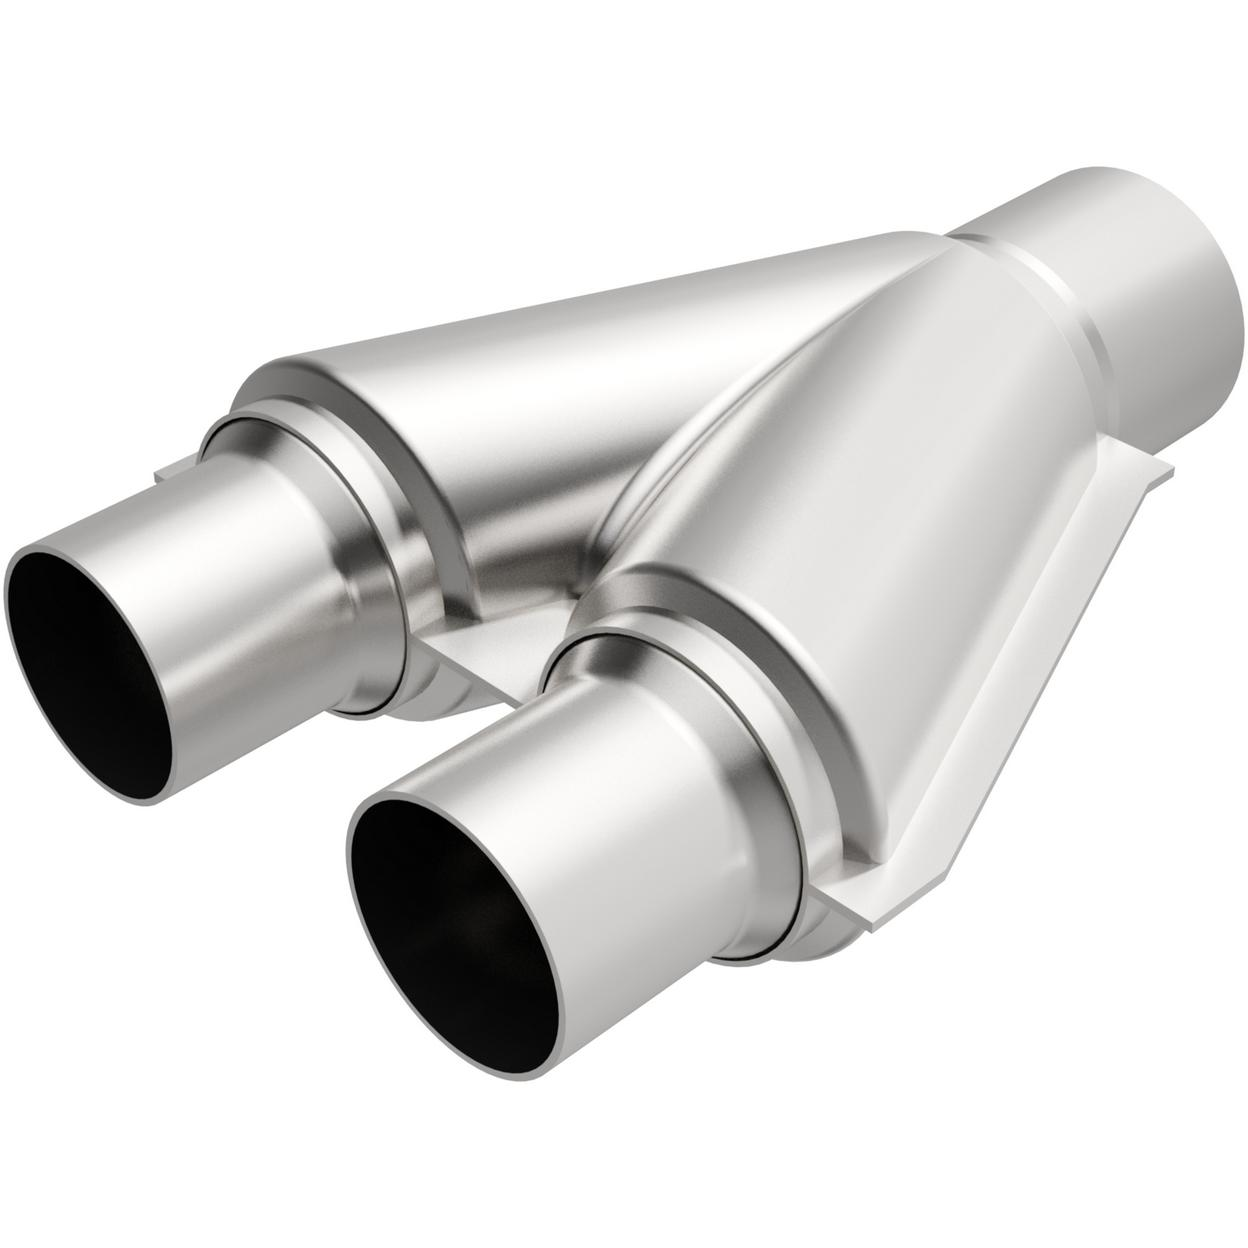 Exhaust Y-Pipe - 3.00/2.00